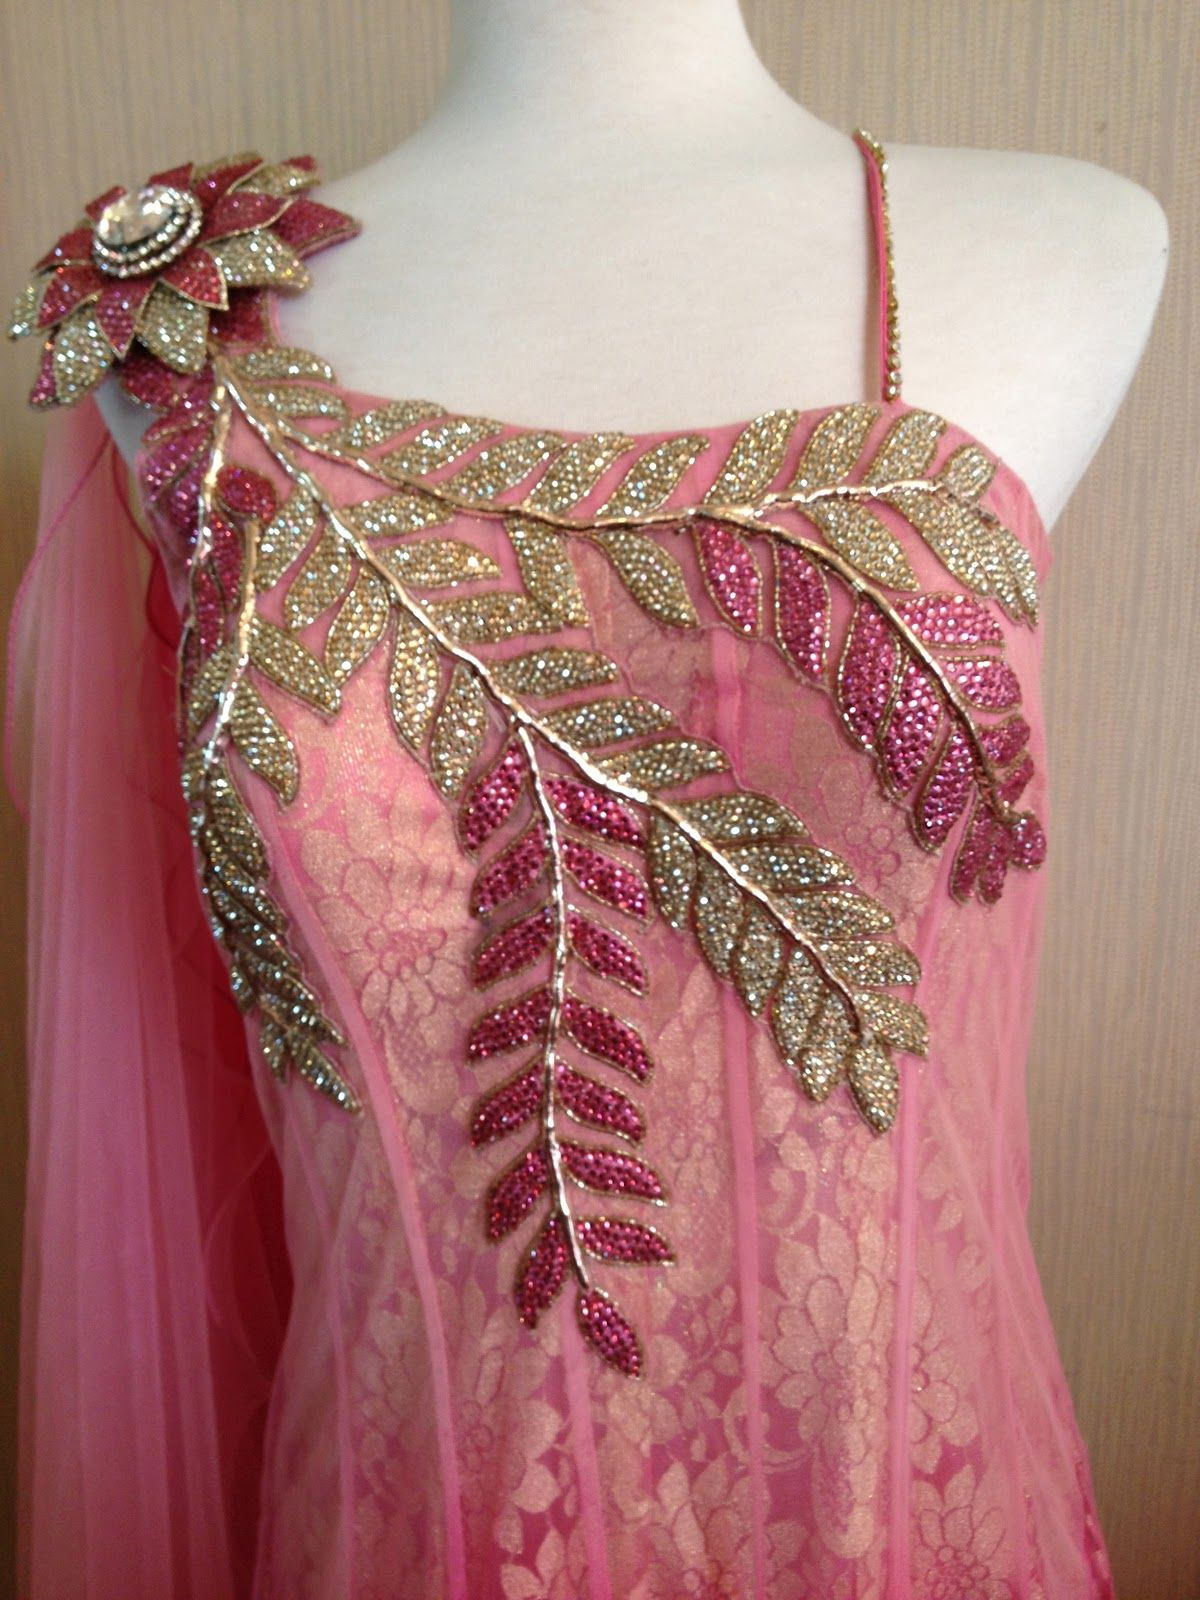 Image result for beaded embroidery designs save pinterest image result for beaded embroidery designs bankloansurffo Images